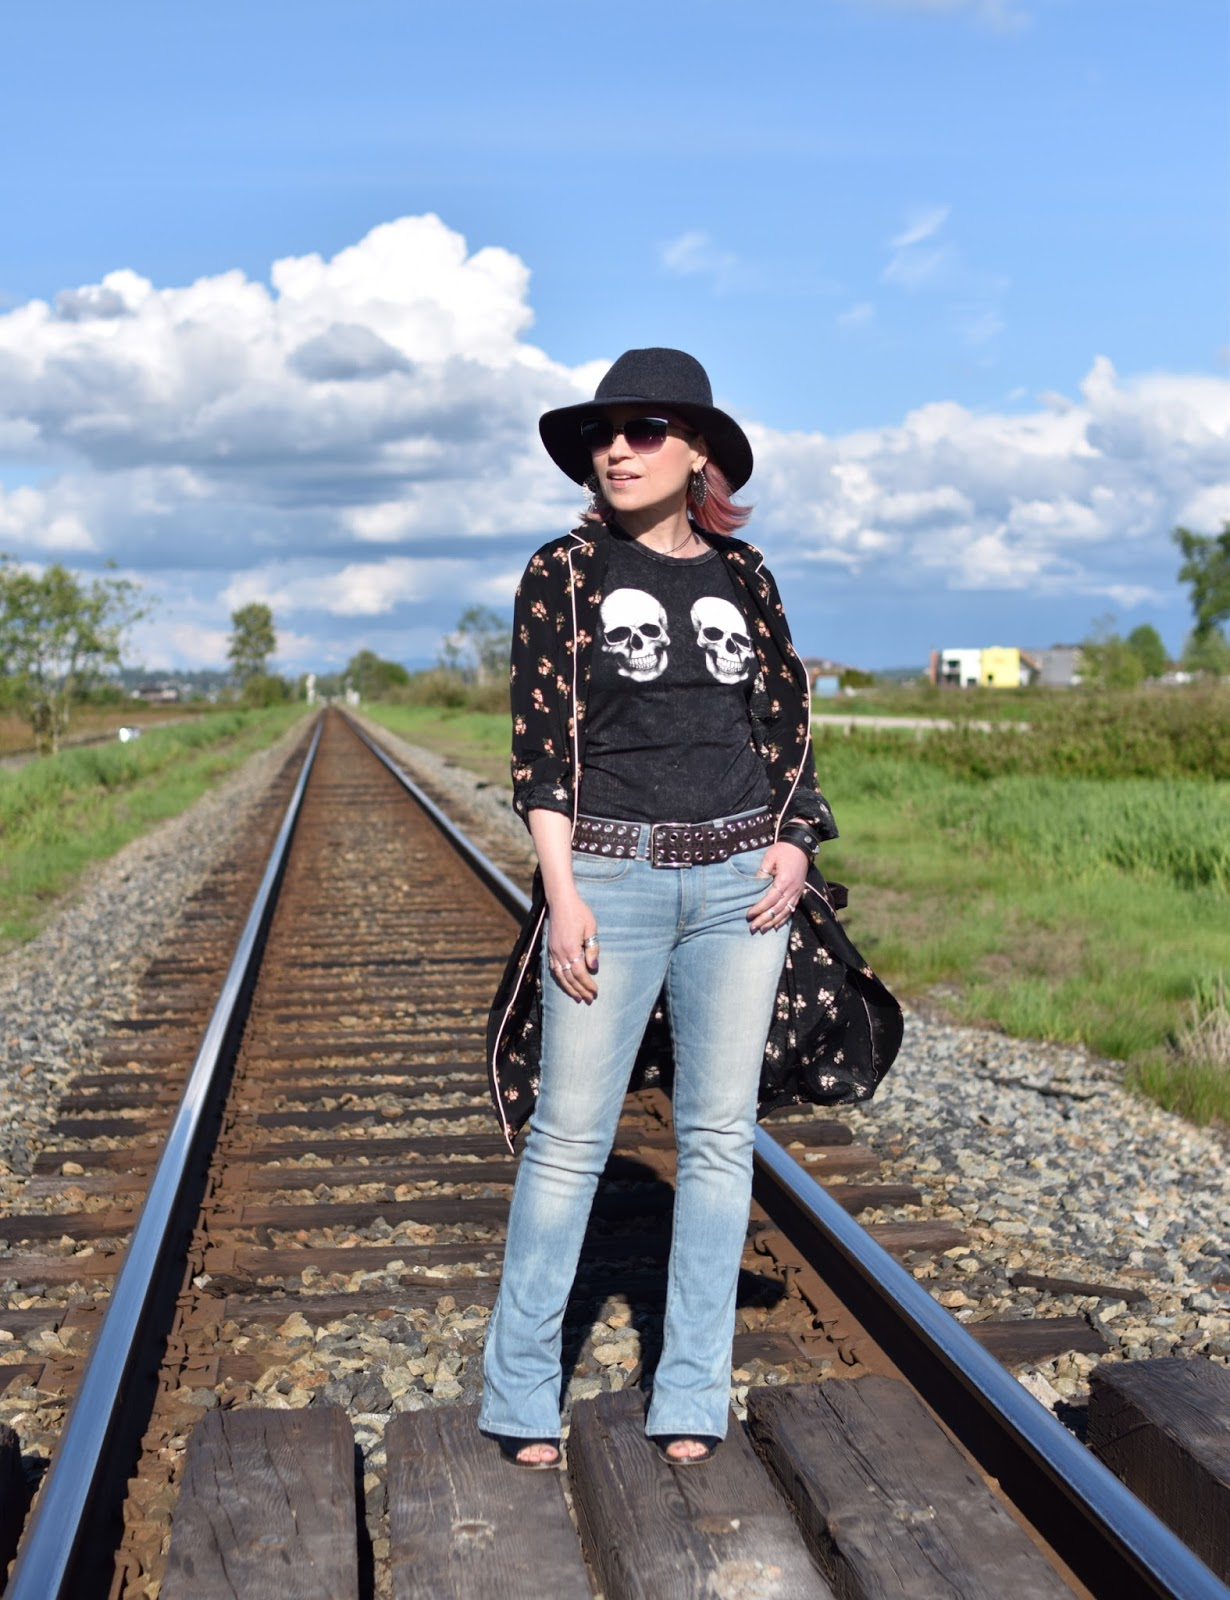 Monika Faulkner outfit inspiration - styling a skull t-shirt, floral shirtdress, flare jeans, and floppy hat